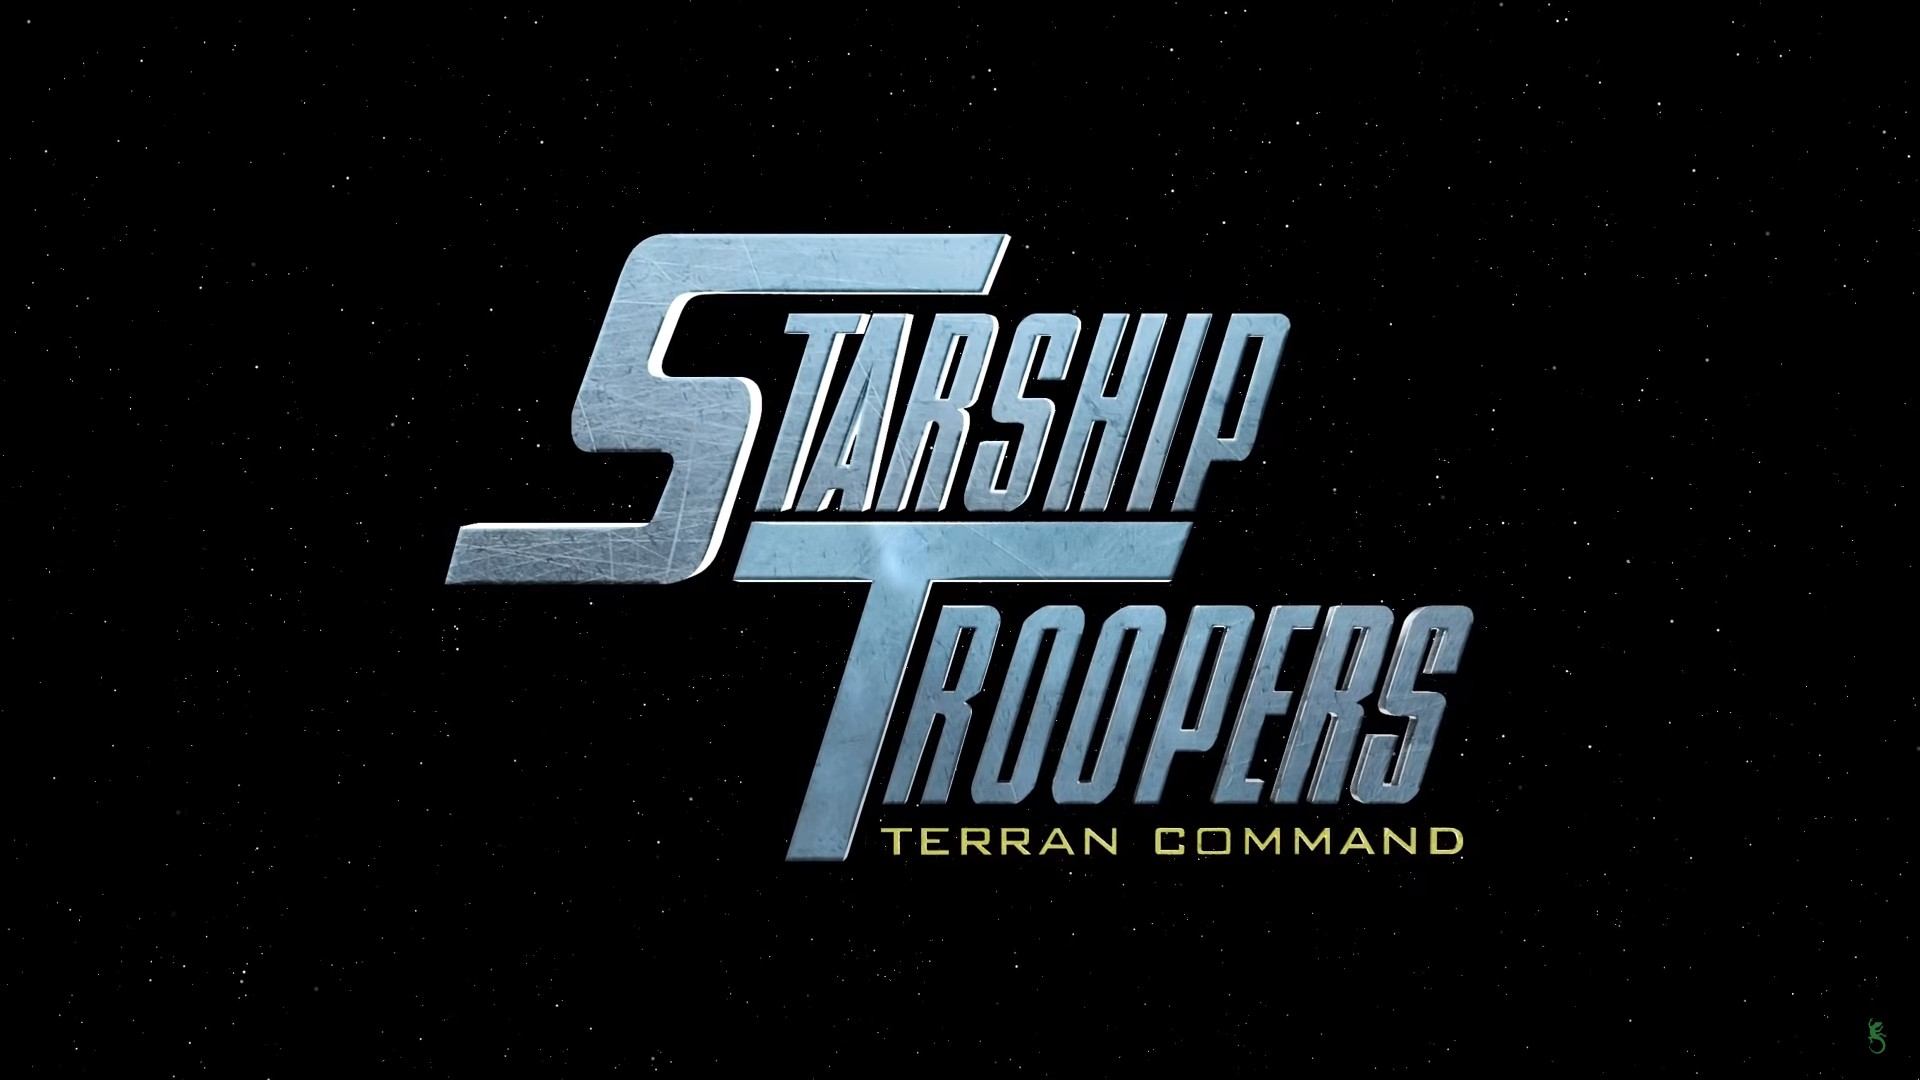 Best Rts 2020.Real Time Strategy Starship Troopers Terran Command Coming